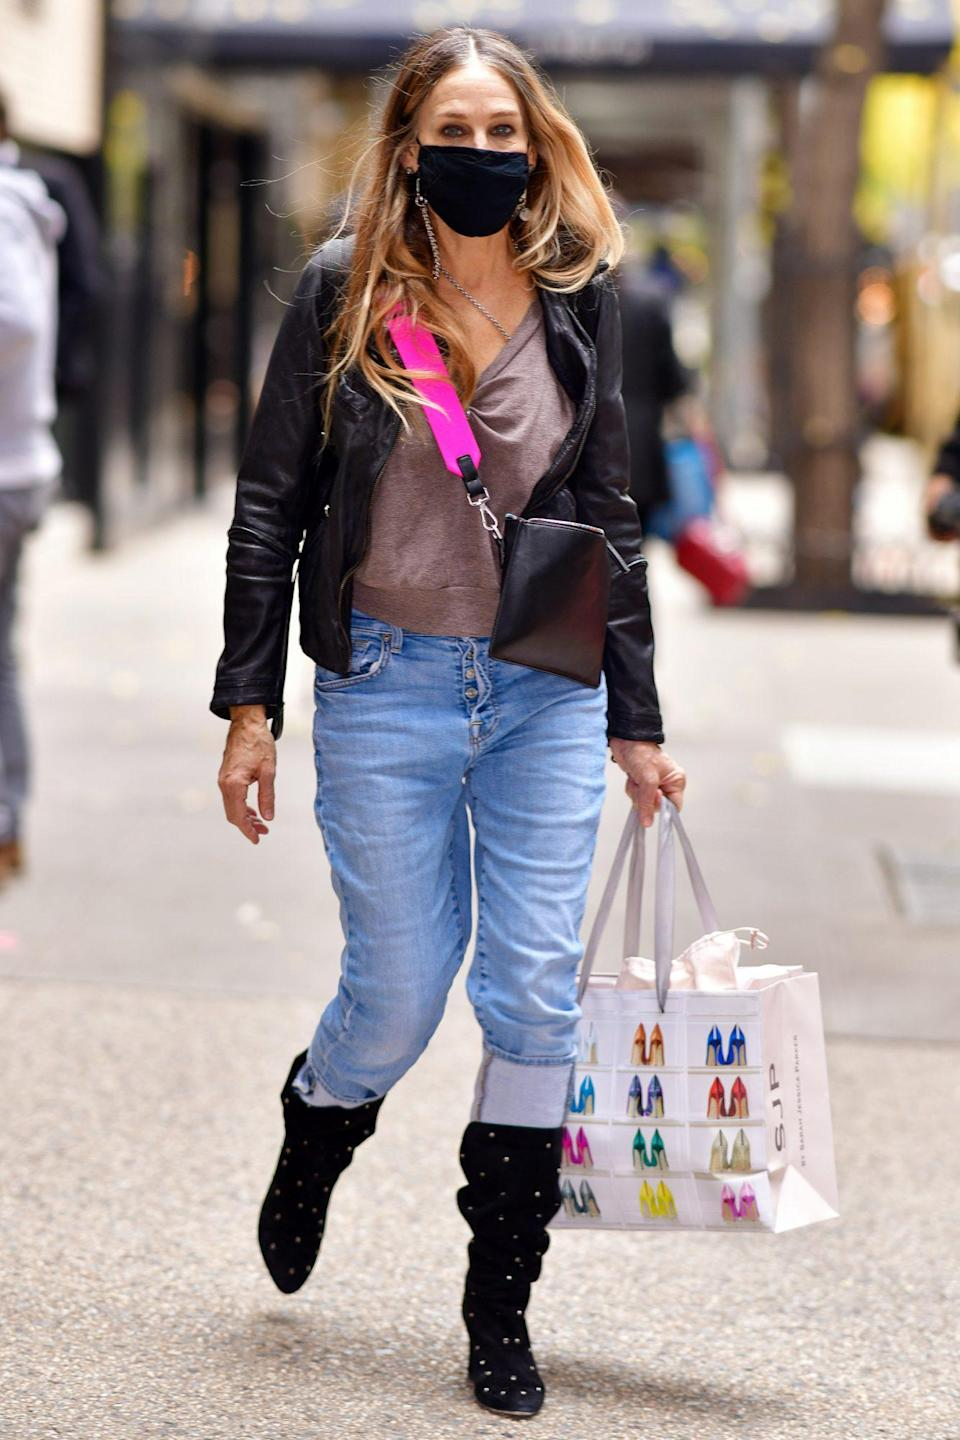 <p>Sarah Jessica Parker leaves her eponymous store with a goodie bag in tow on Tuesday in N.Y.C.</p>